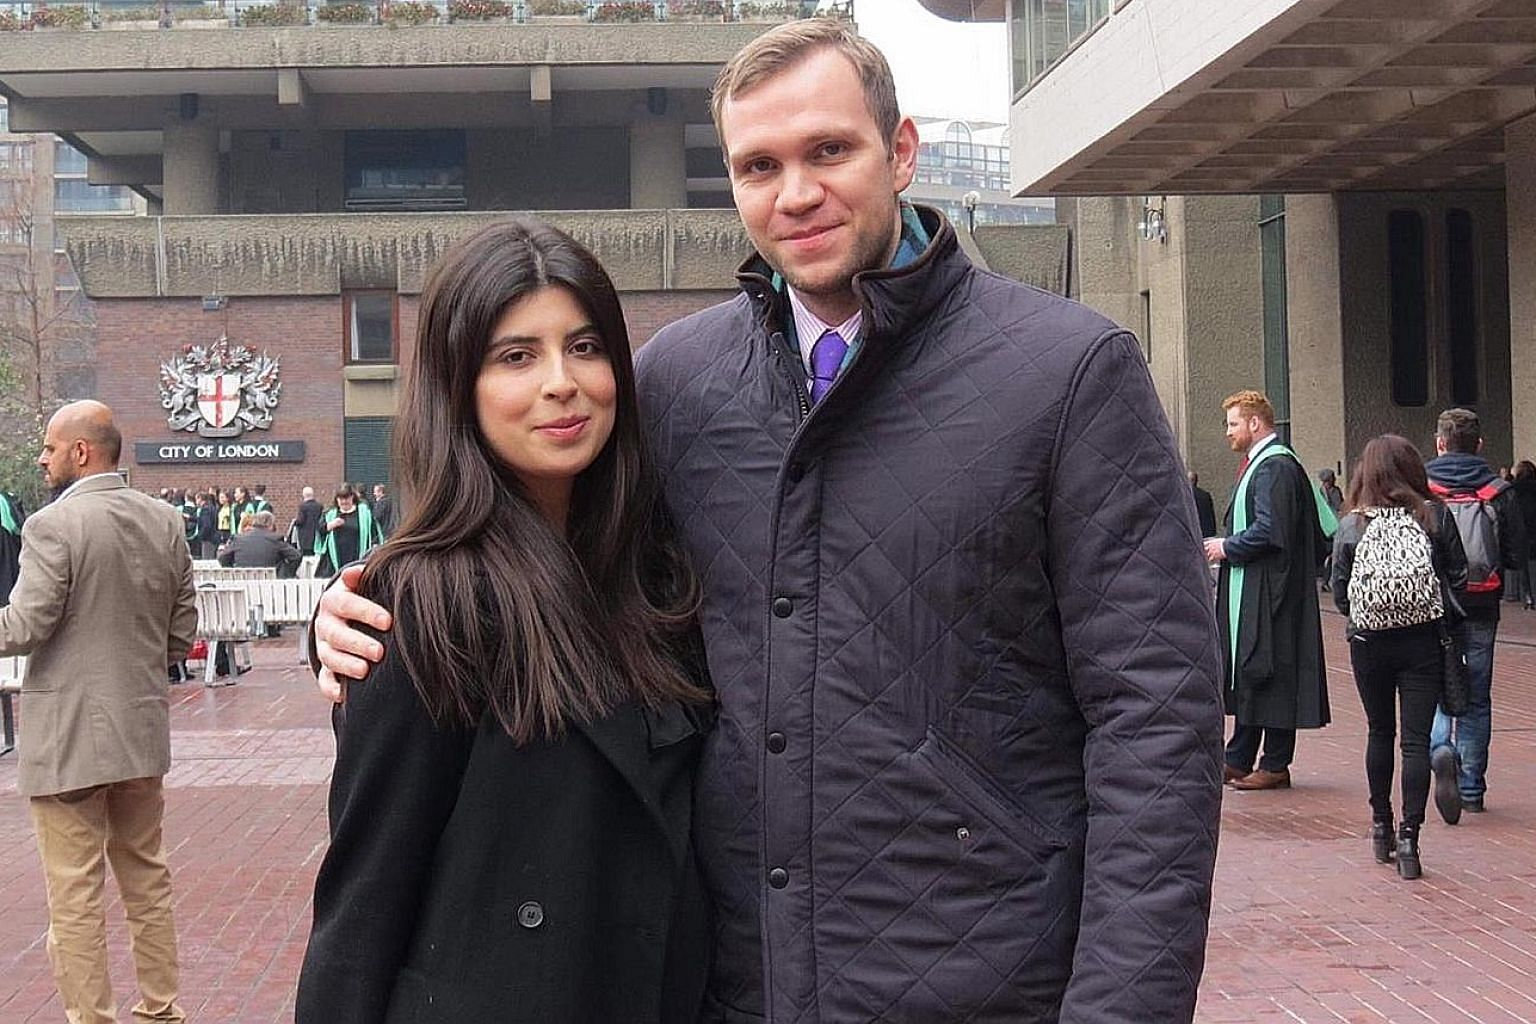 Mr Matthew Hedges, 31, was held by the UAE authorities for six months on charges of spying for MI6 before being sentenced to life imprisonment. The Briton was pardoned and released on Nov 26 after a dialogue between UAE and the British authorities. H